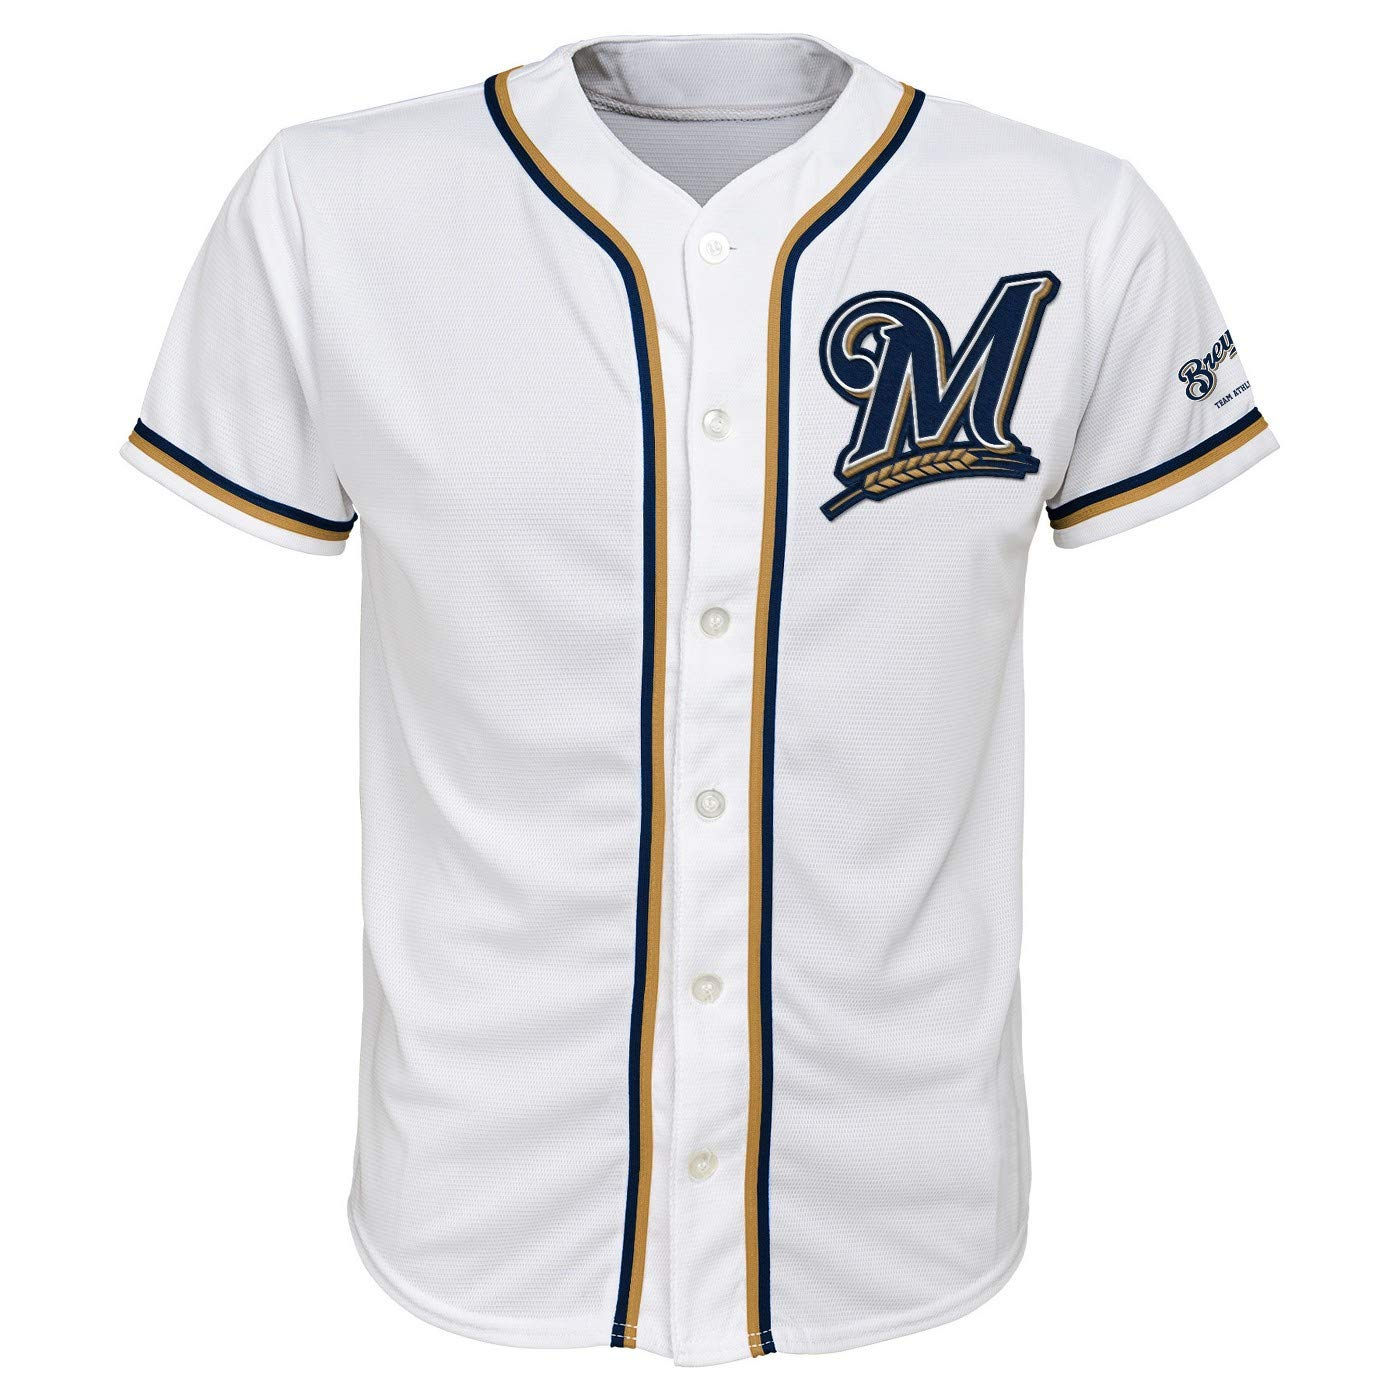 watch 9ed92 5e684 Amazon.com: Milwaukee Brewers White Youth Team Apparel Home ...